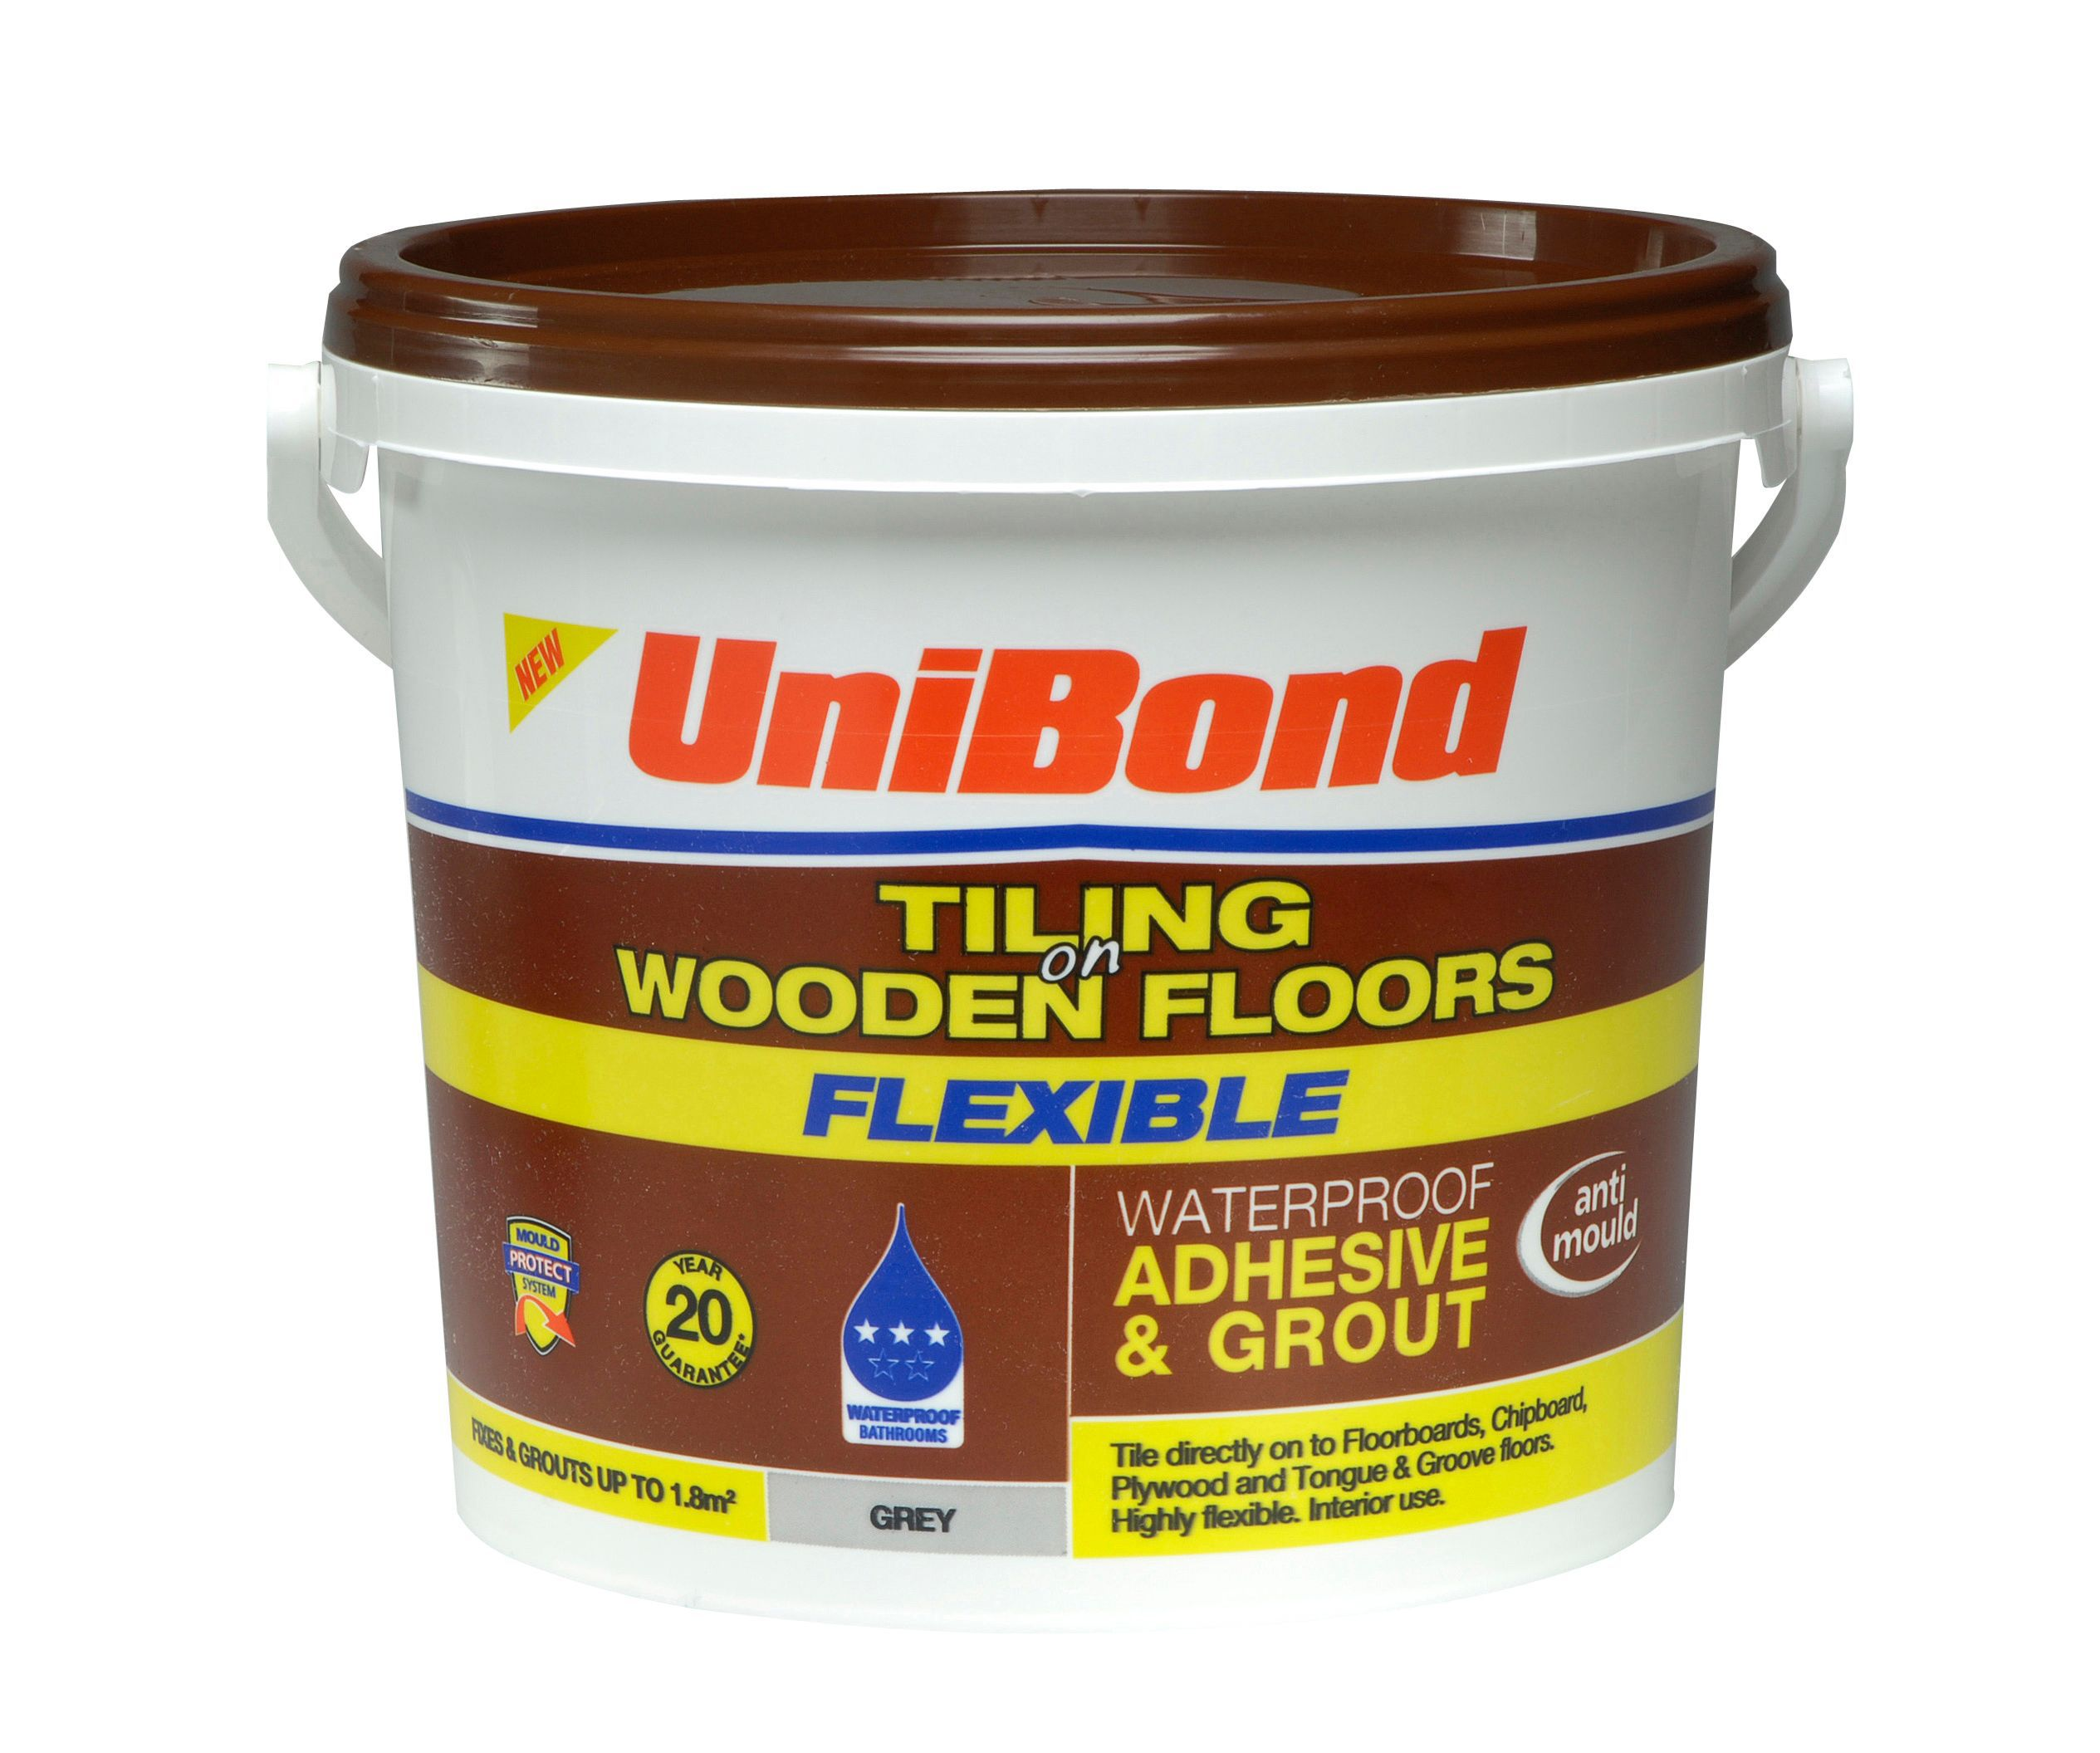 Unibond Ready To Use Floor Tile Adhesive Grout Grey 7 3kg